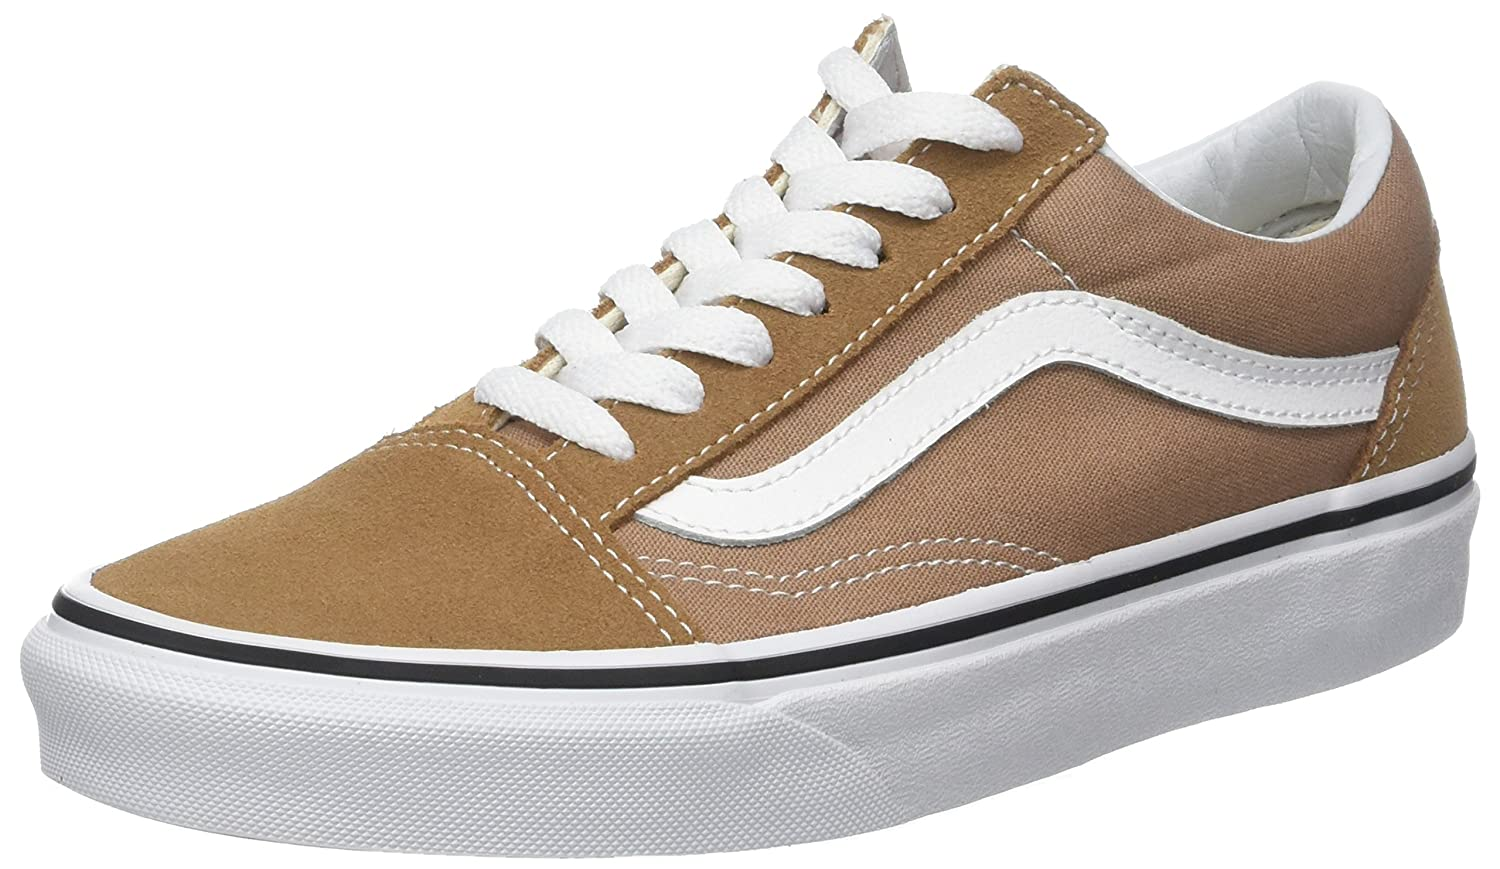 Vans Men's Shoes Old Skool Tigers Eye Fashion Skateboarding Sneakers (7.5  Men/9.0 Women)